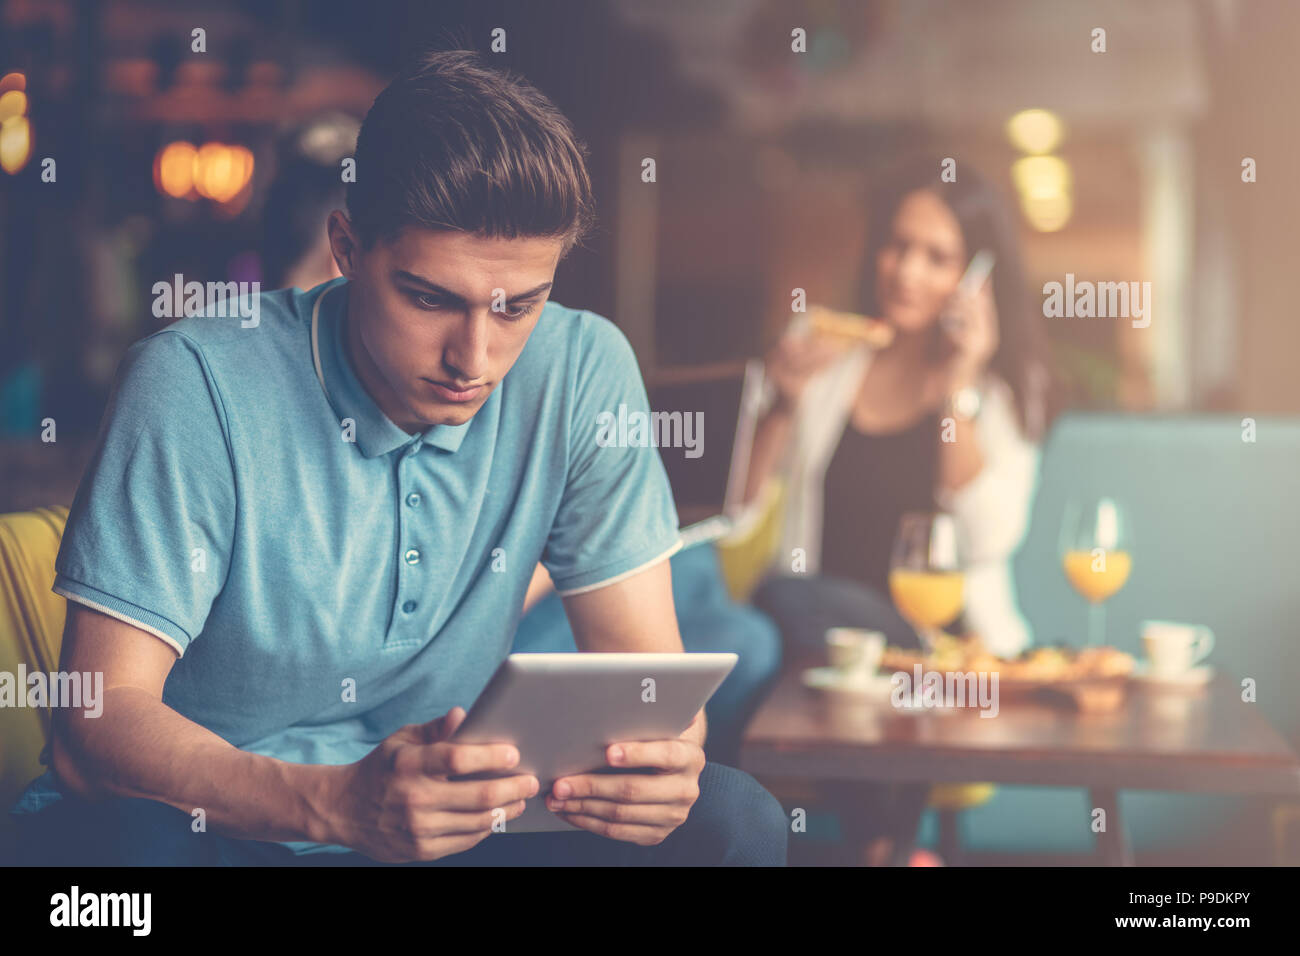 Young male using digital tablet in modern startup office - Stock Image